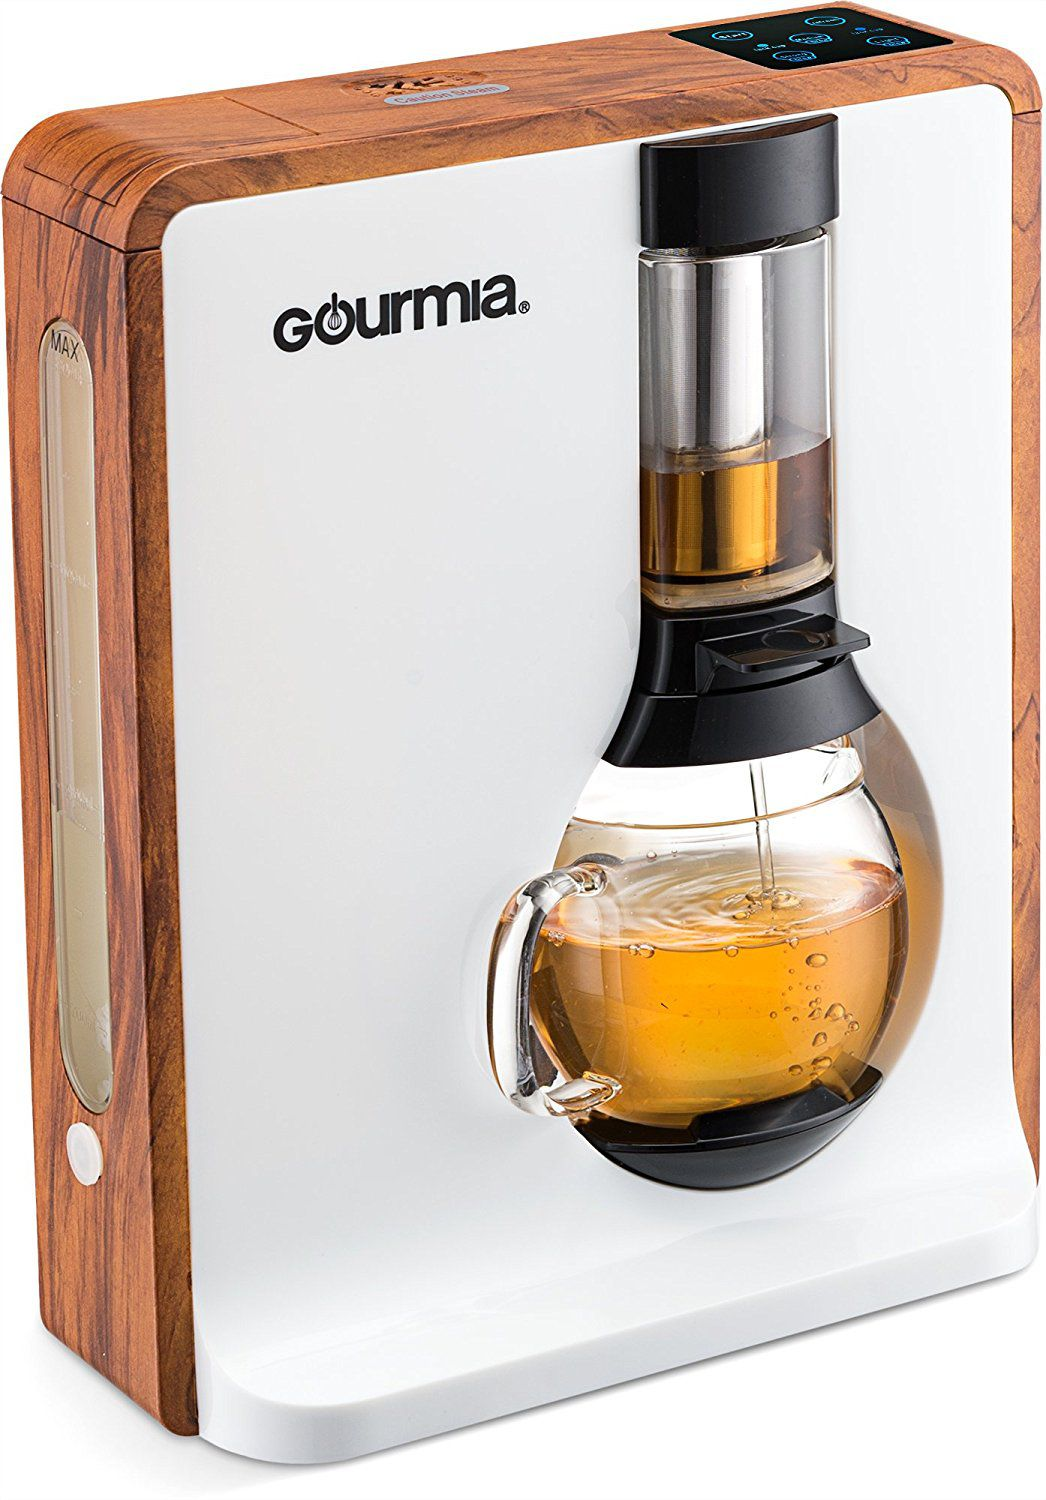 Gourmia Electric Square Tea Maker Best Offer